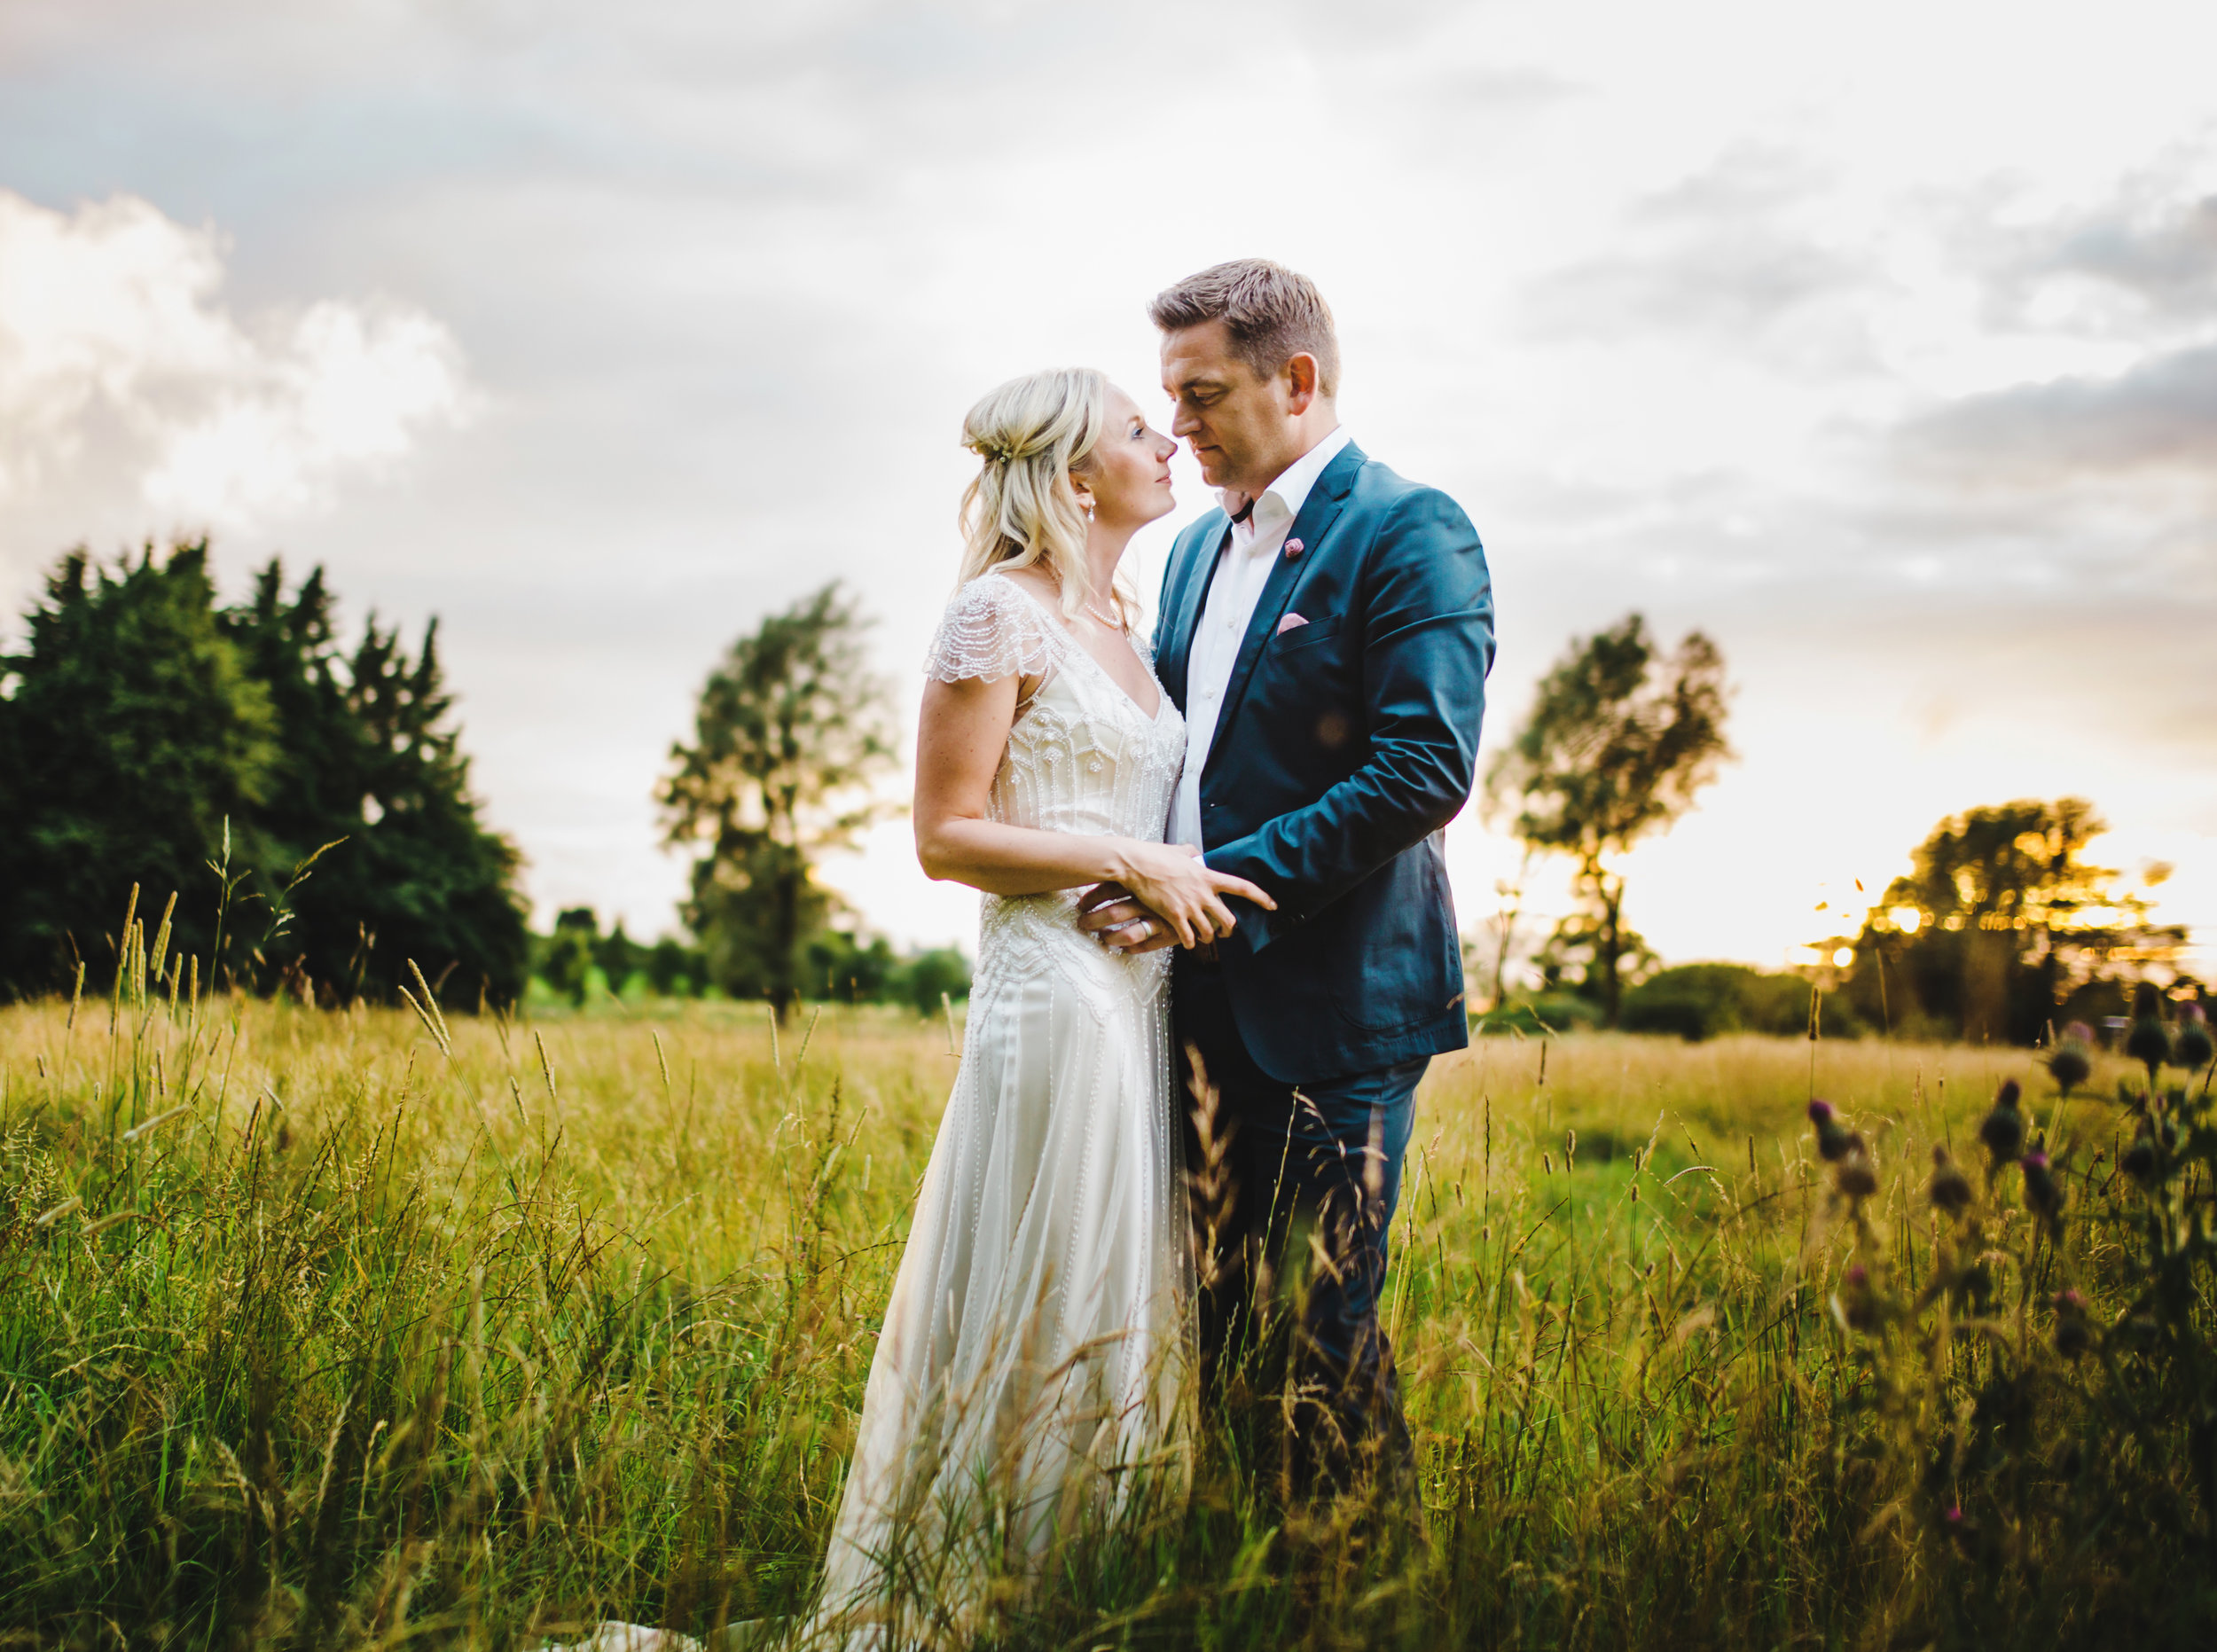 sunset wedding pictures - Hipping Hall Hotel Lake District